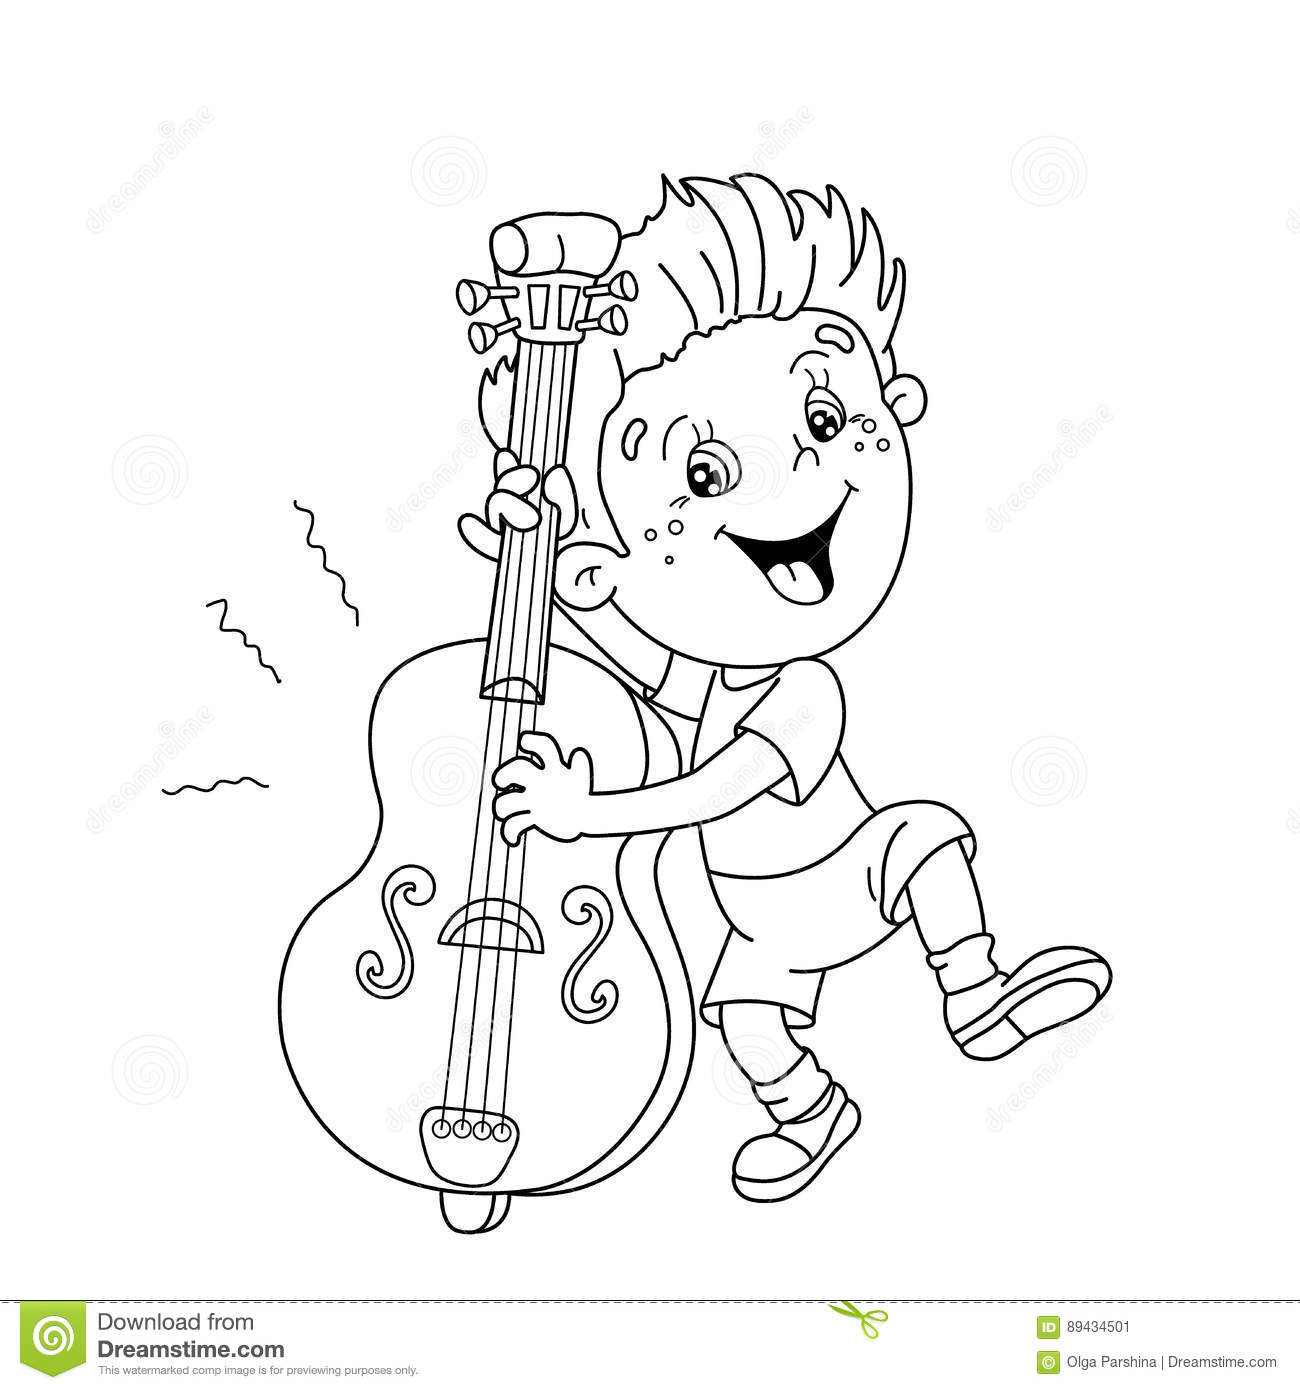 Coloring Page Outline Of Cartoon Boy Playing The Cello Stock ...